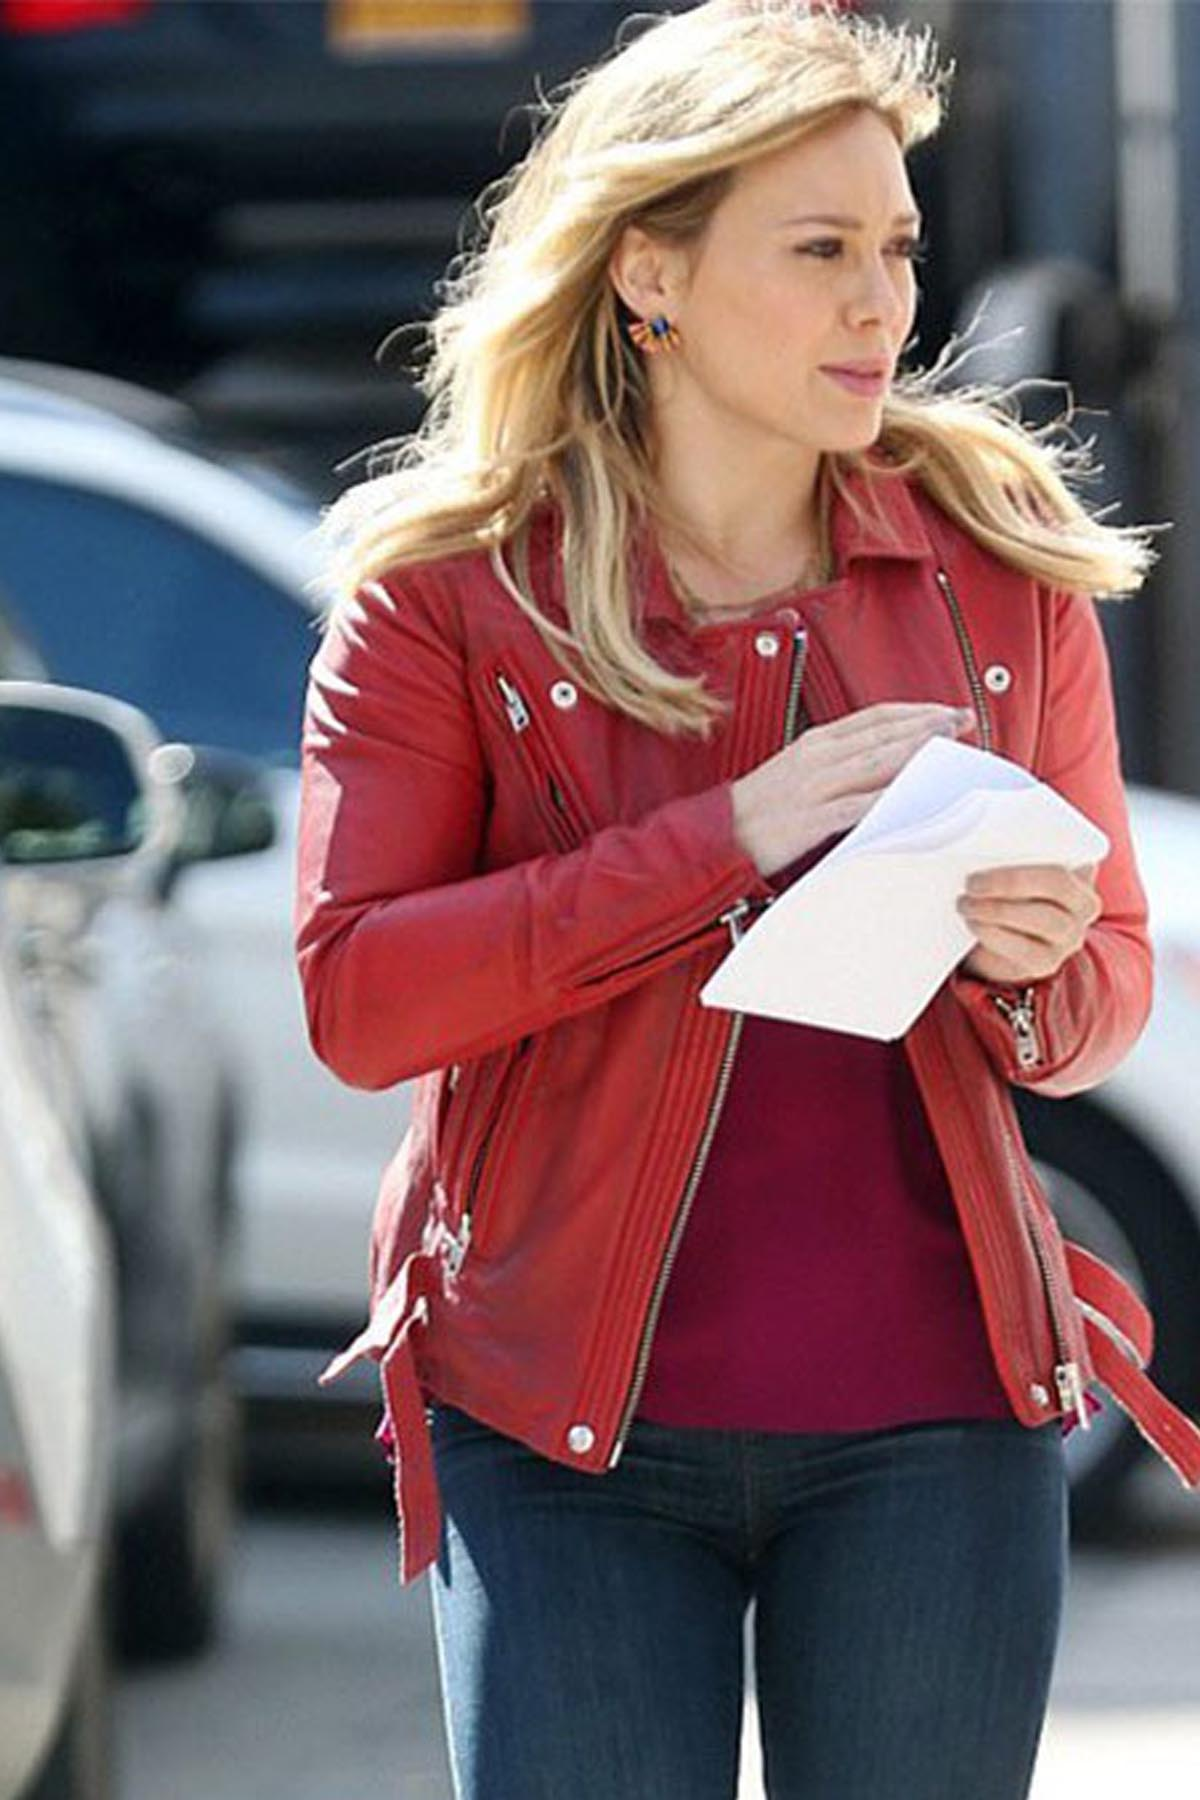 Hilary Duff Leather Jacket For Women 2